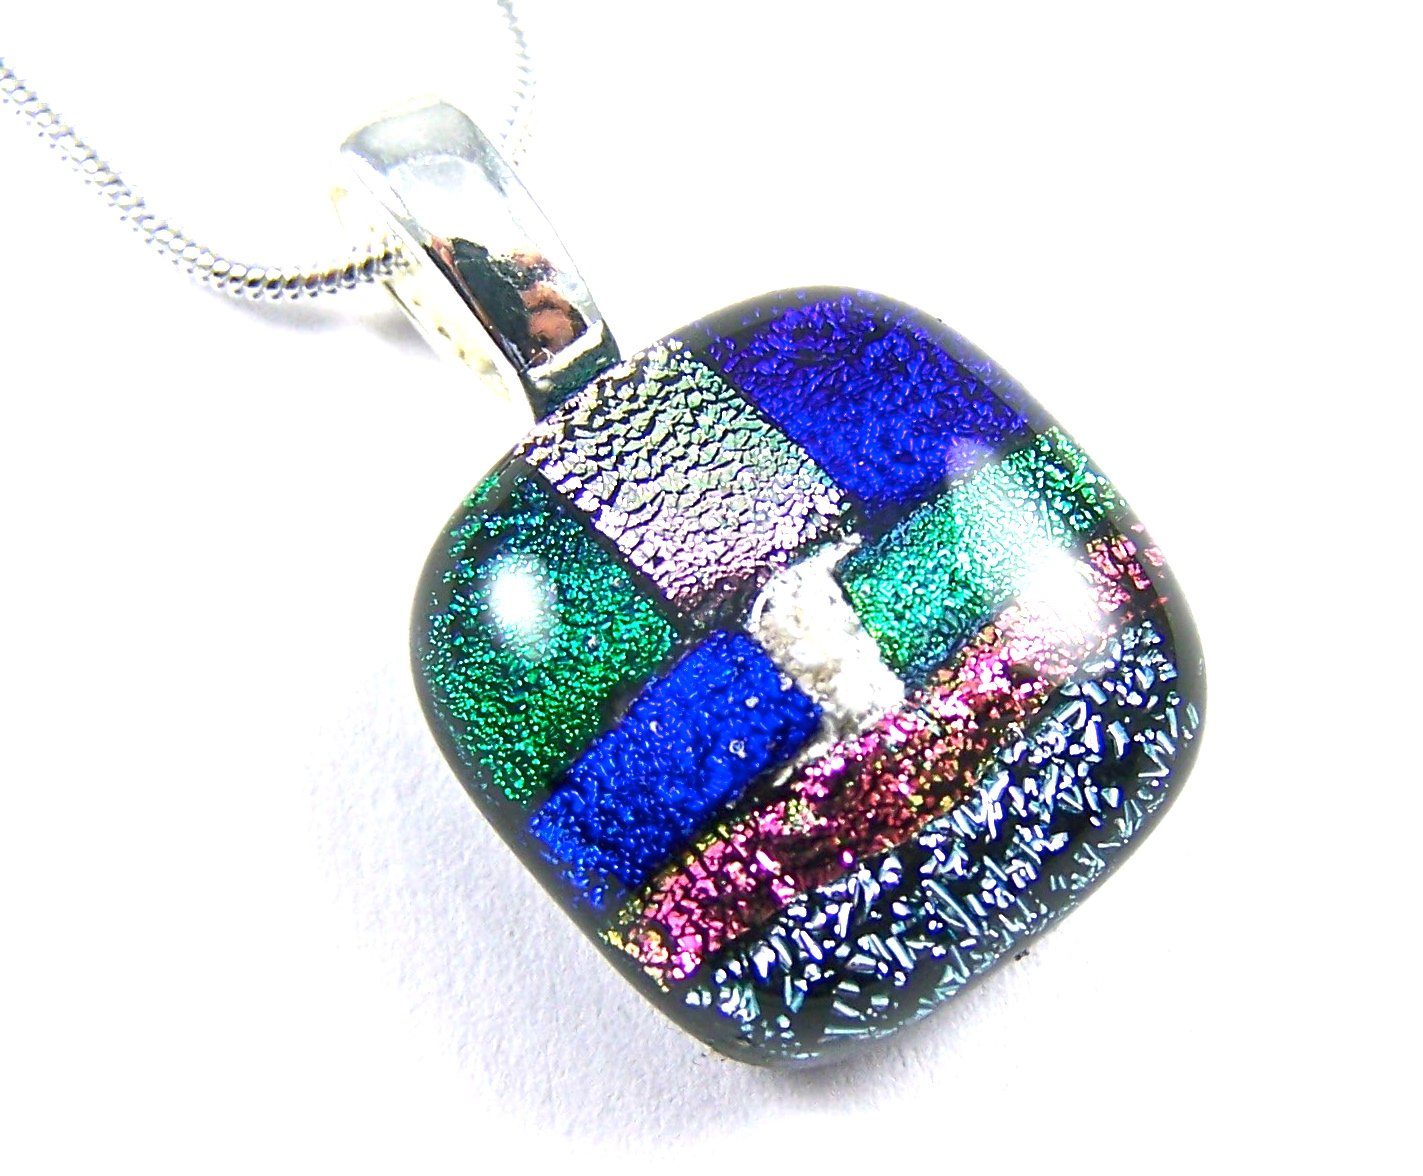 Small dichroic glass memorial pendant cremation ashes jewelry memorial ashes cremation pendant small patchwork blue coral pink mozeypictures Choice Image